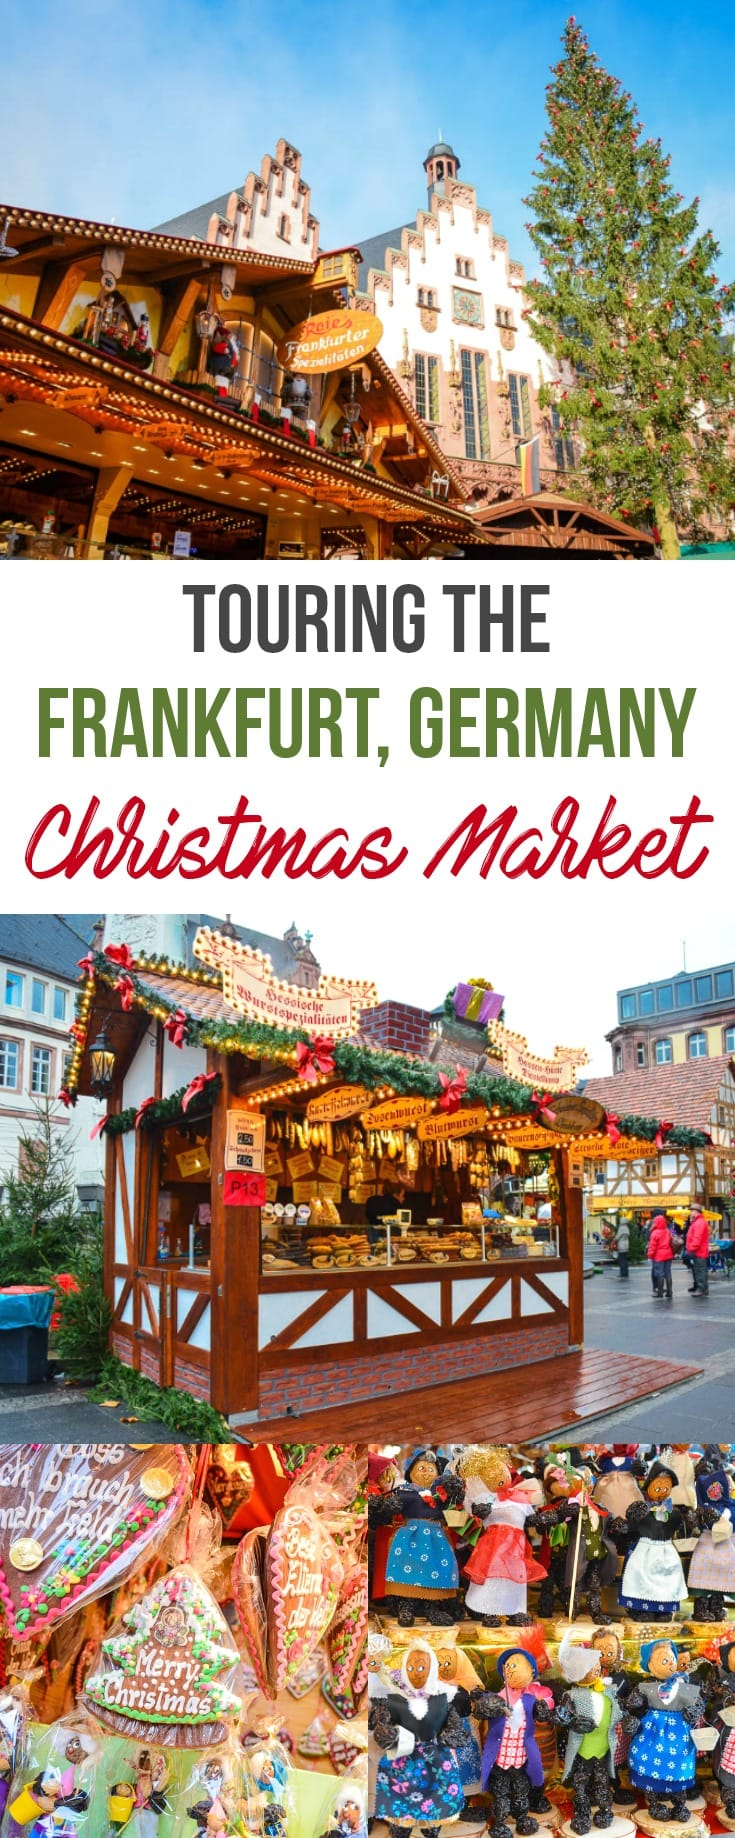 Touring the Frankfurt Christmas Market